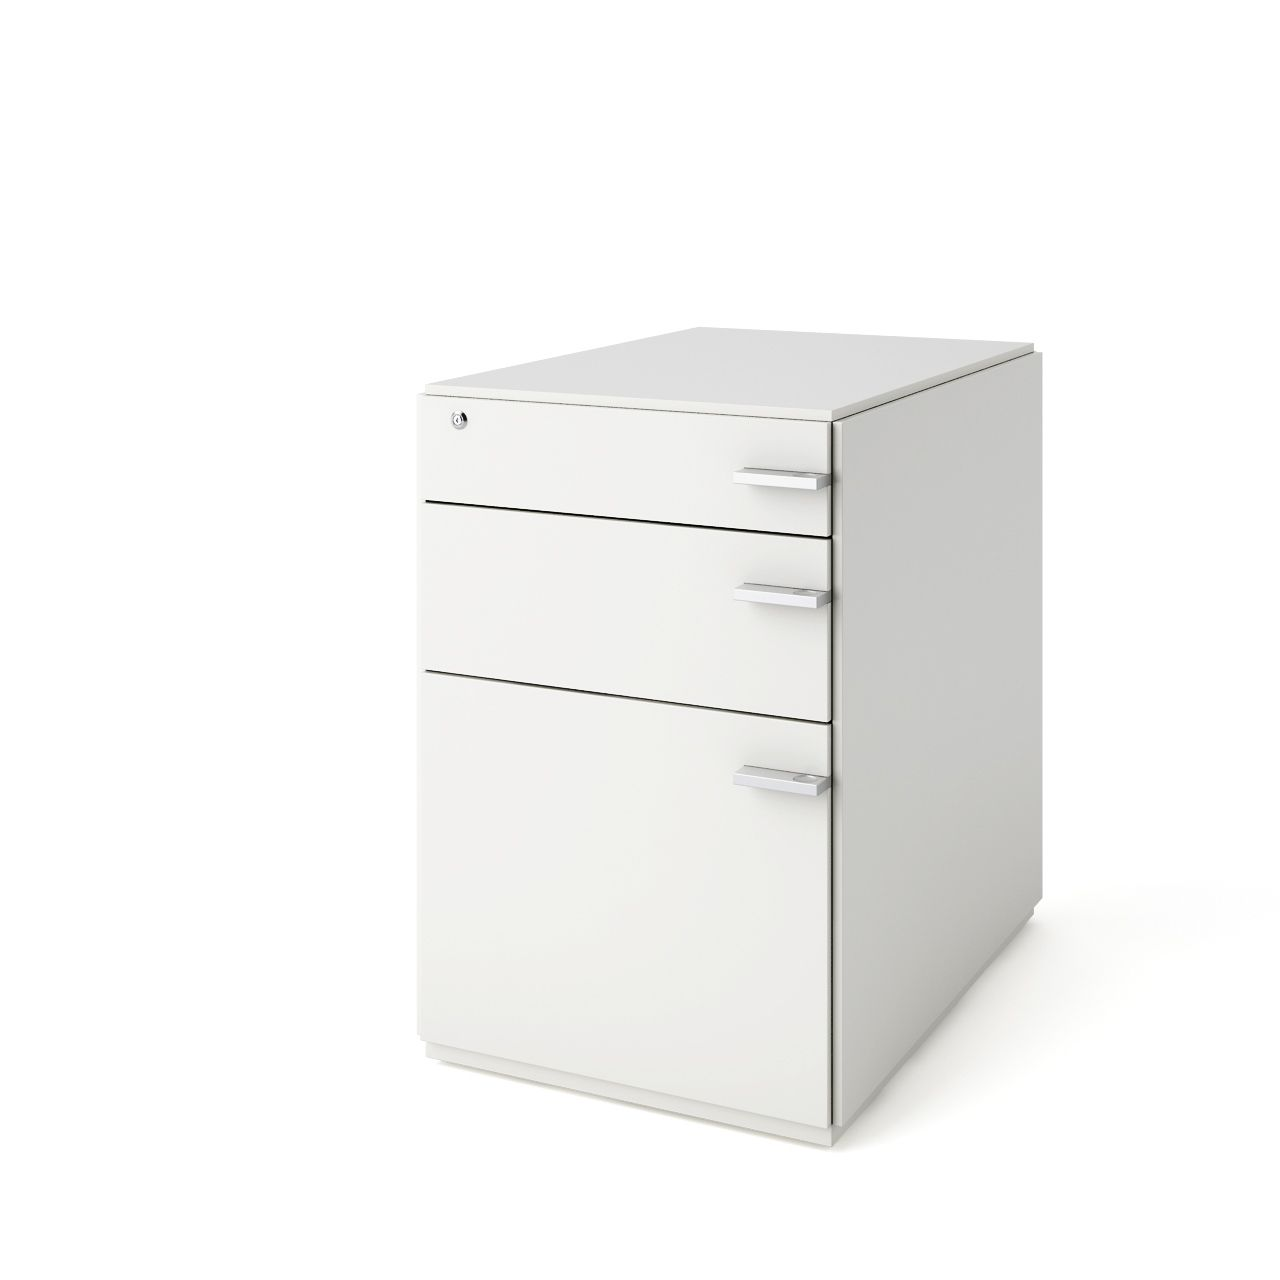 Free 3d model: Next Desk Body by Mobimex http://dimensiva.com/next-desk-body-by-mobimex/